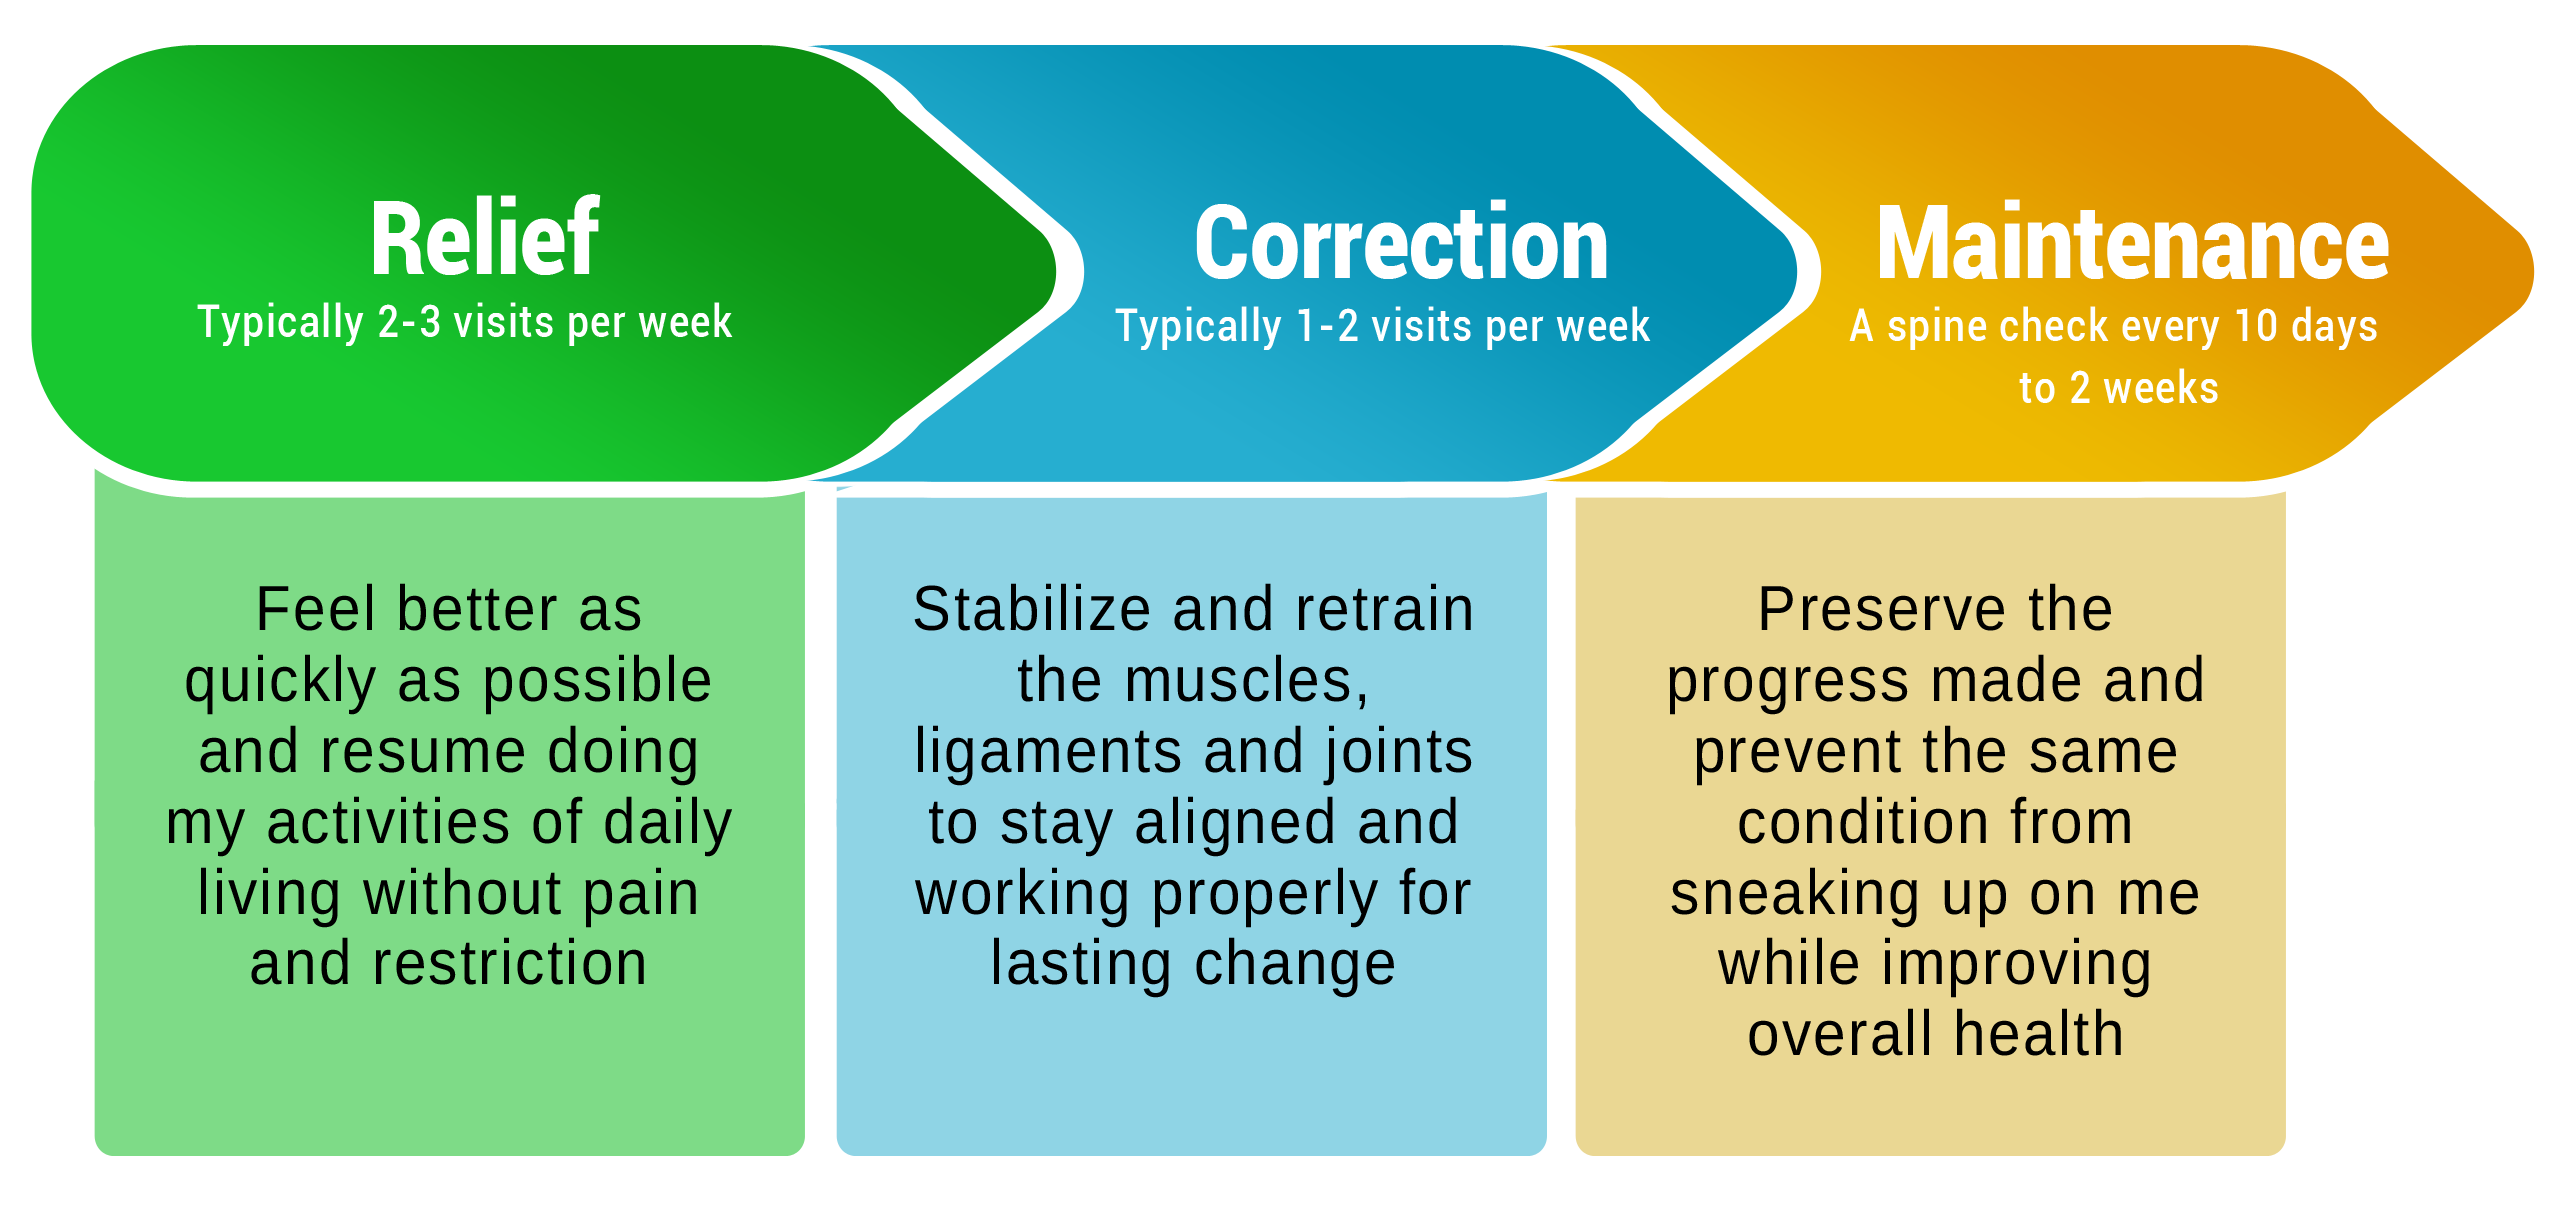 Express Phases of Care